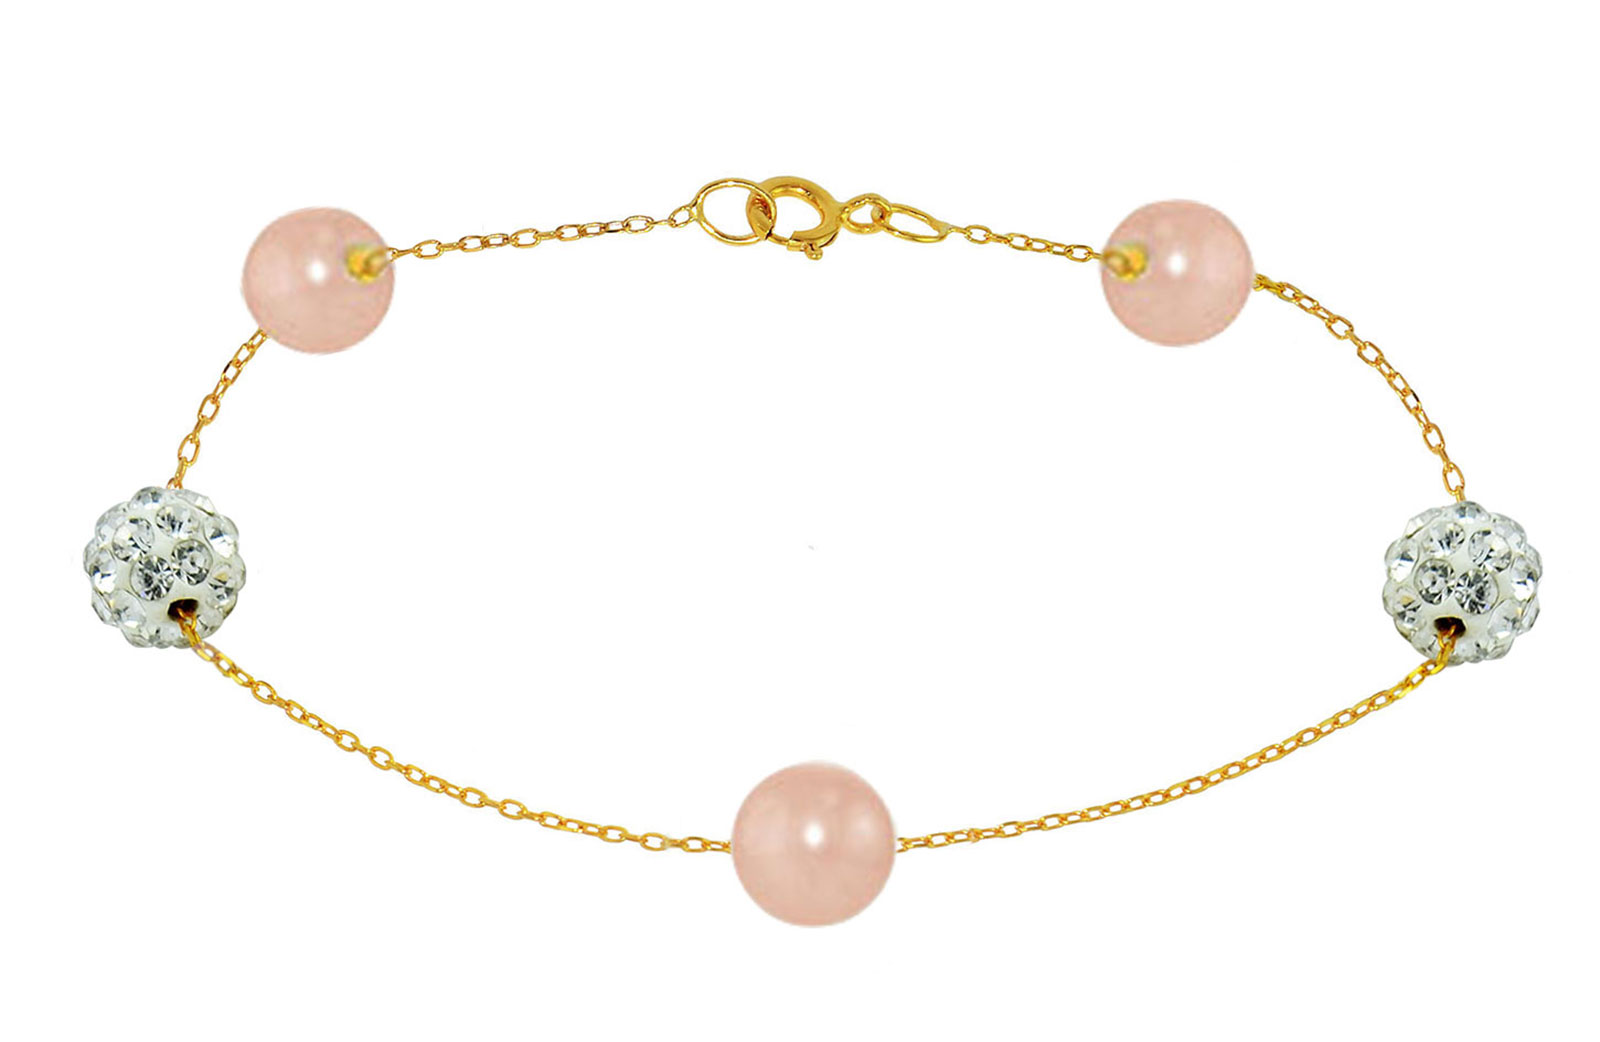 Vera Perla 18K Solid Gold Gradual Built-in 5-6mm Pink Pearls and Crystal Ball Bracelet